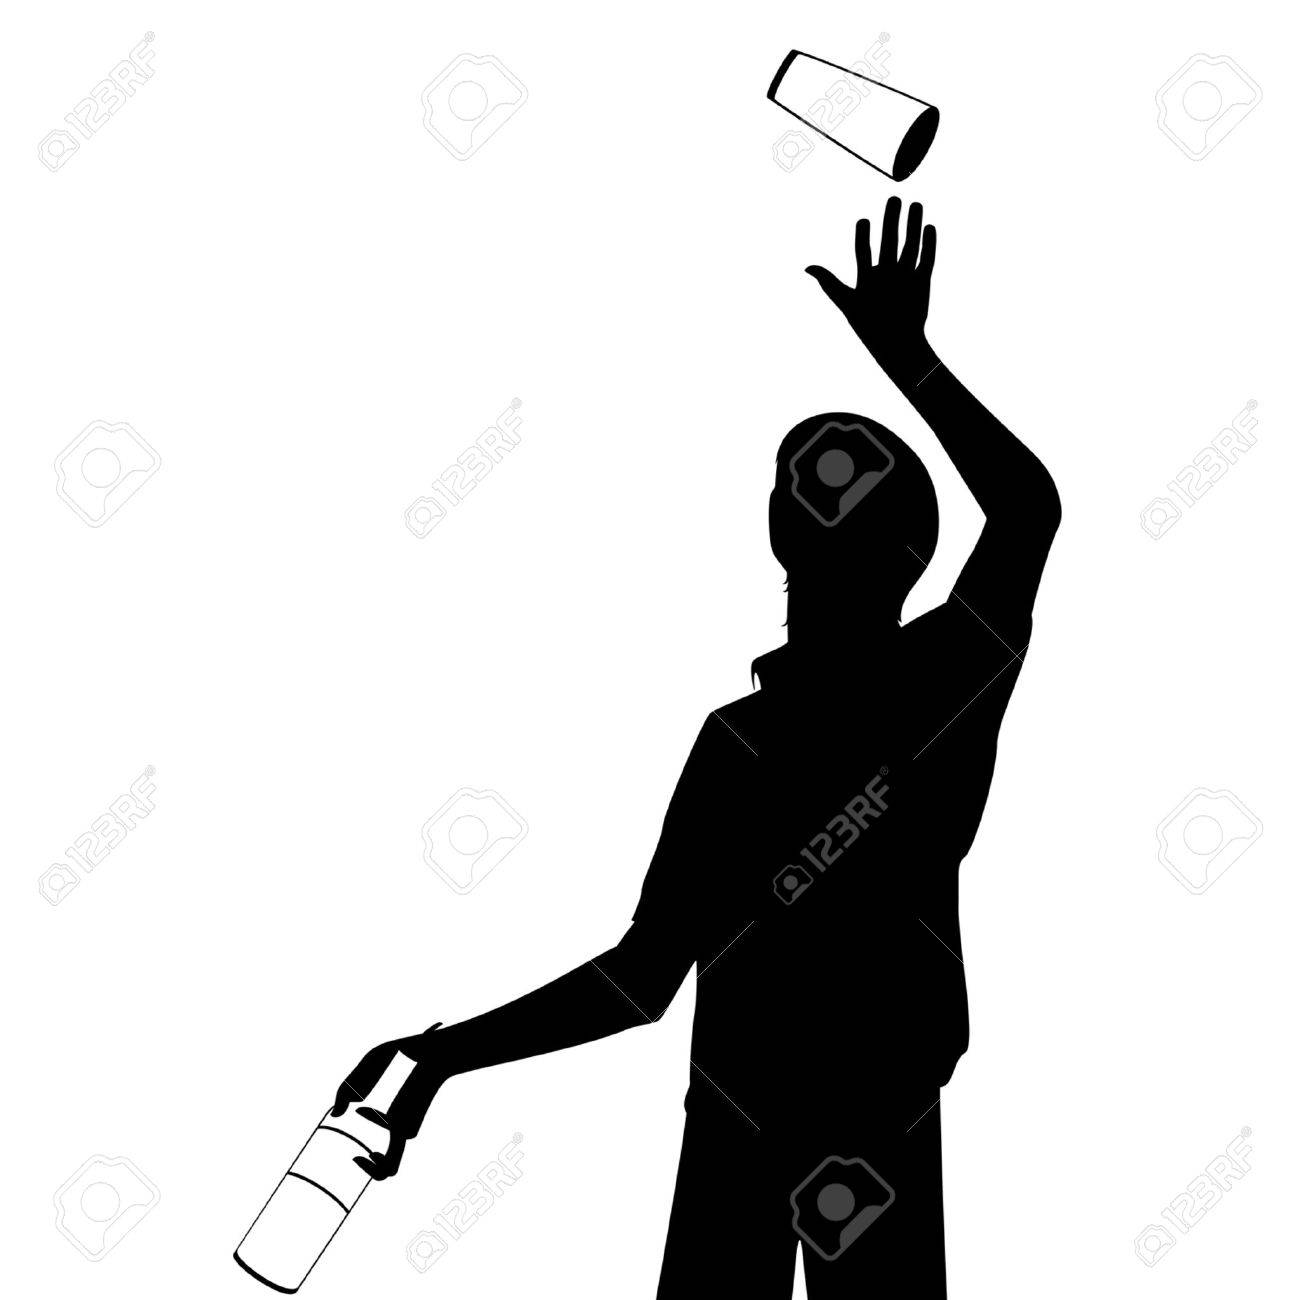 silhouette of barman showing tricks with a bottle Stock Vector - 7977051